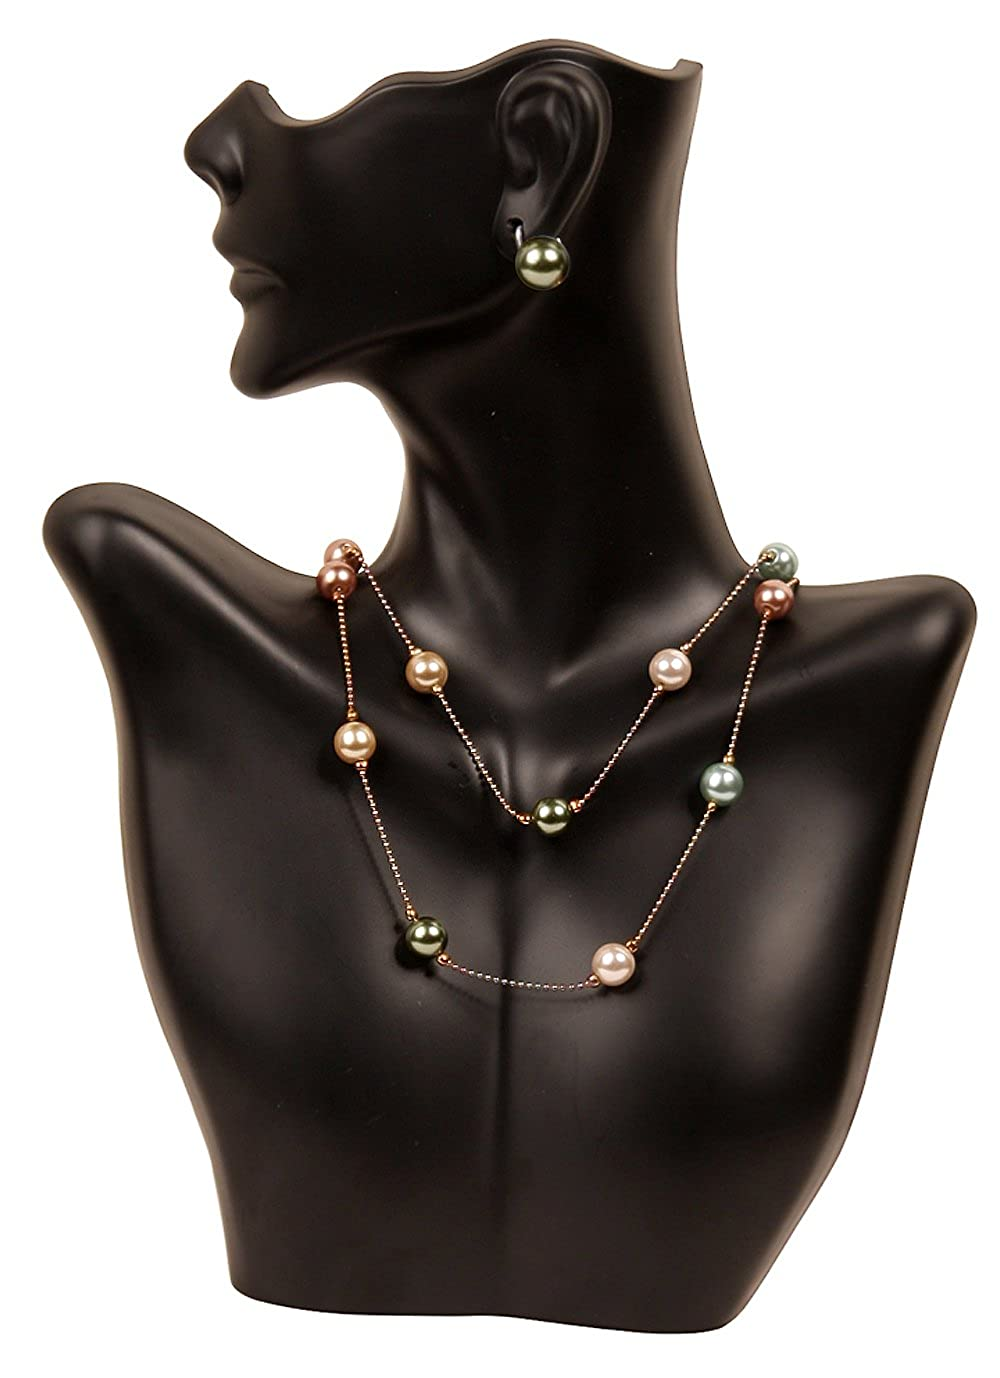 Necklace and Earring Bust Jewelry Display - Black Caddy Bay Collection